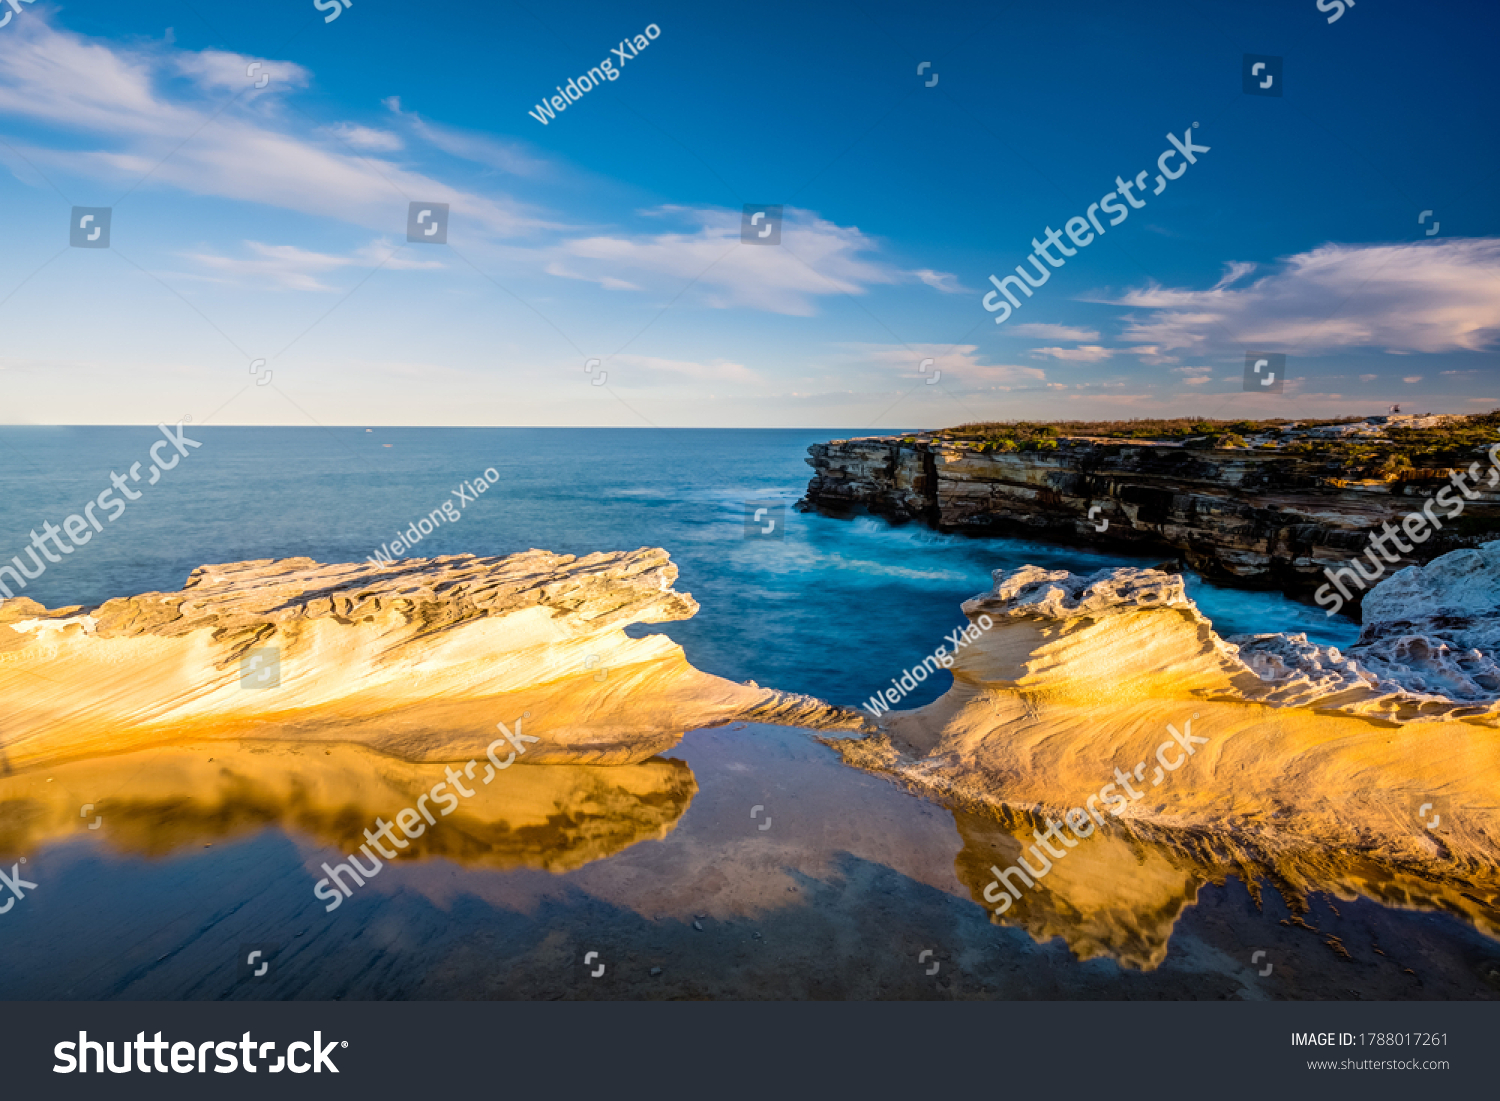 The beautiful coastline of Botany Bay National Park in an Afternoon #1788017261